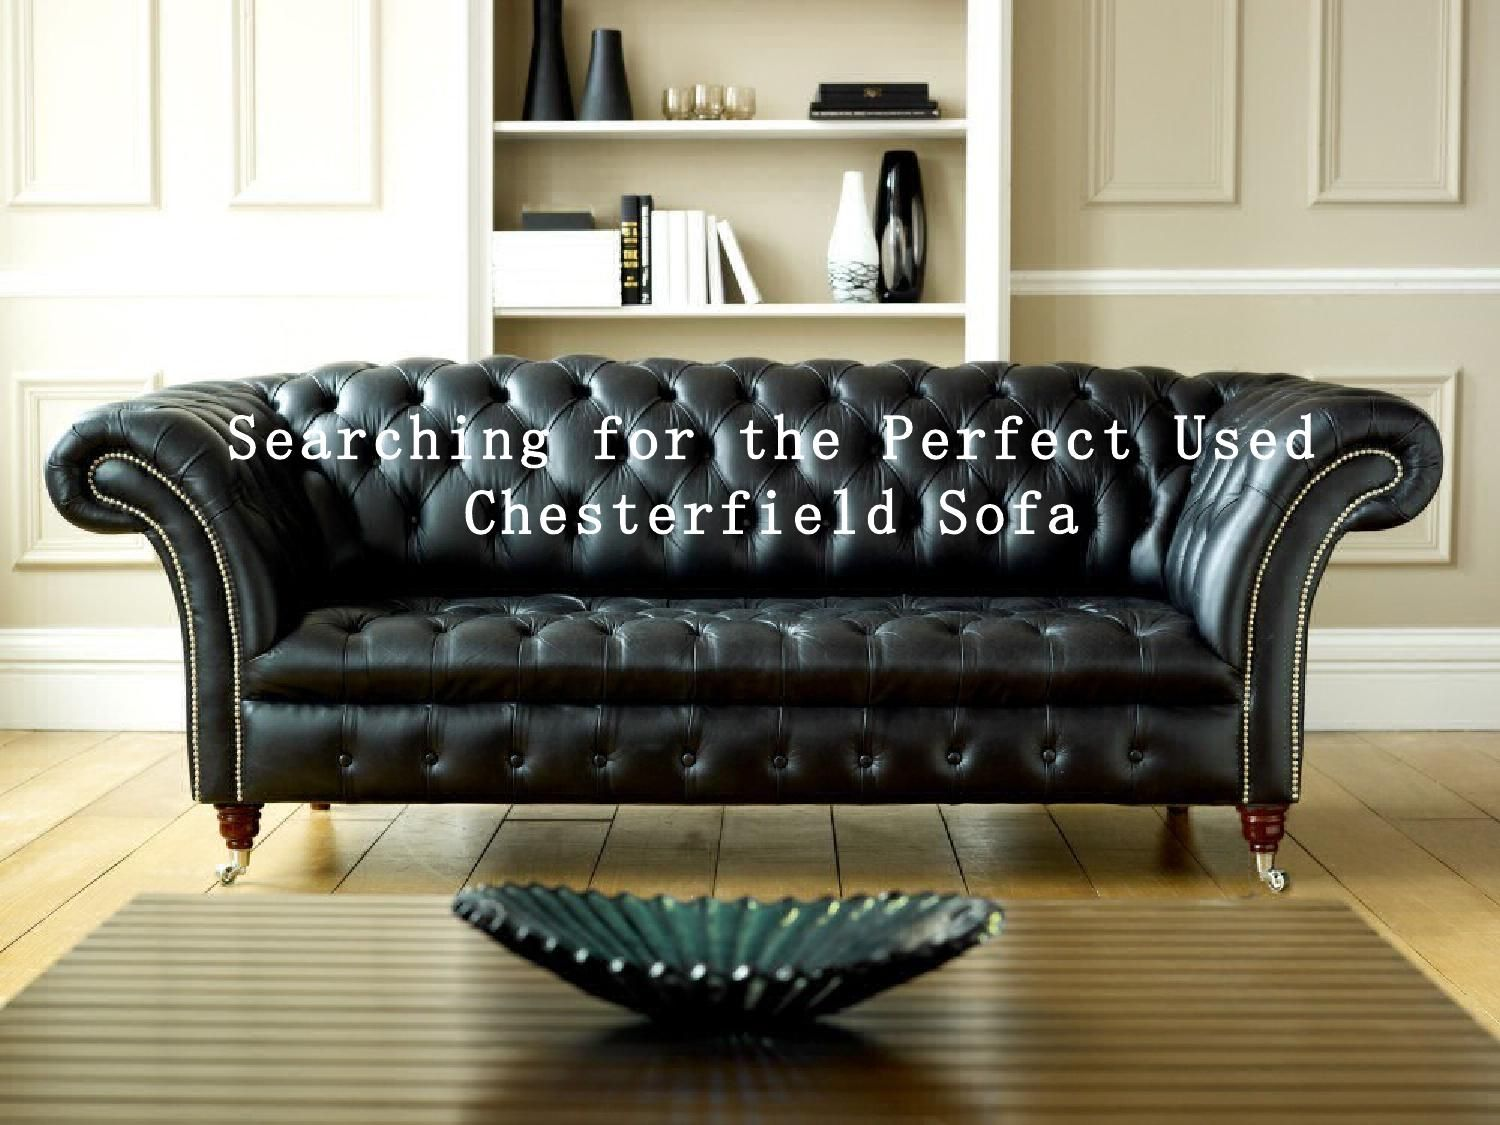 Super Searching For The Perfect Used Chesterfield Sofa In 2019 Machost Co Dining Chair Design Ideas Machostcouk